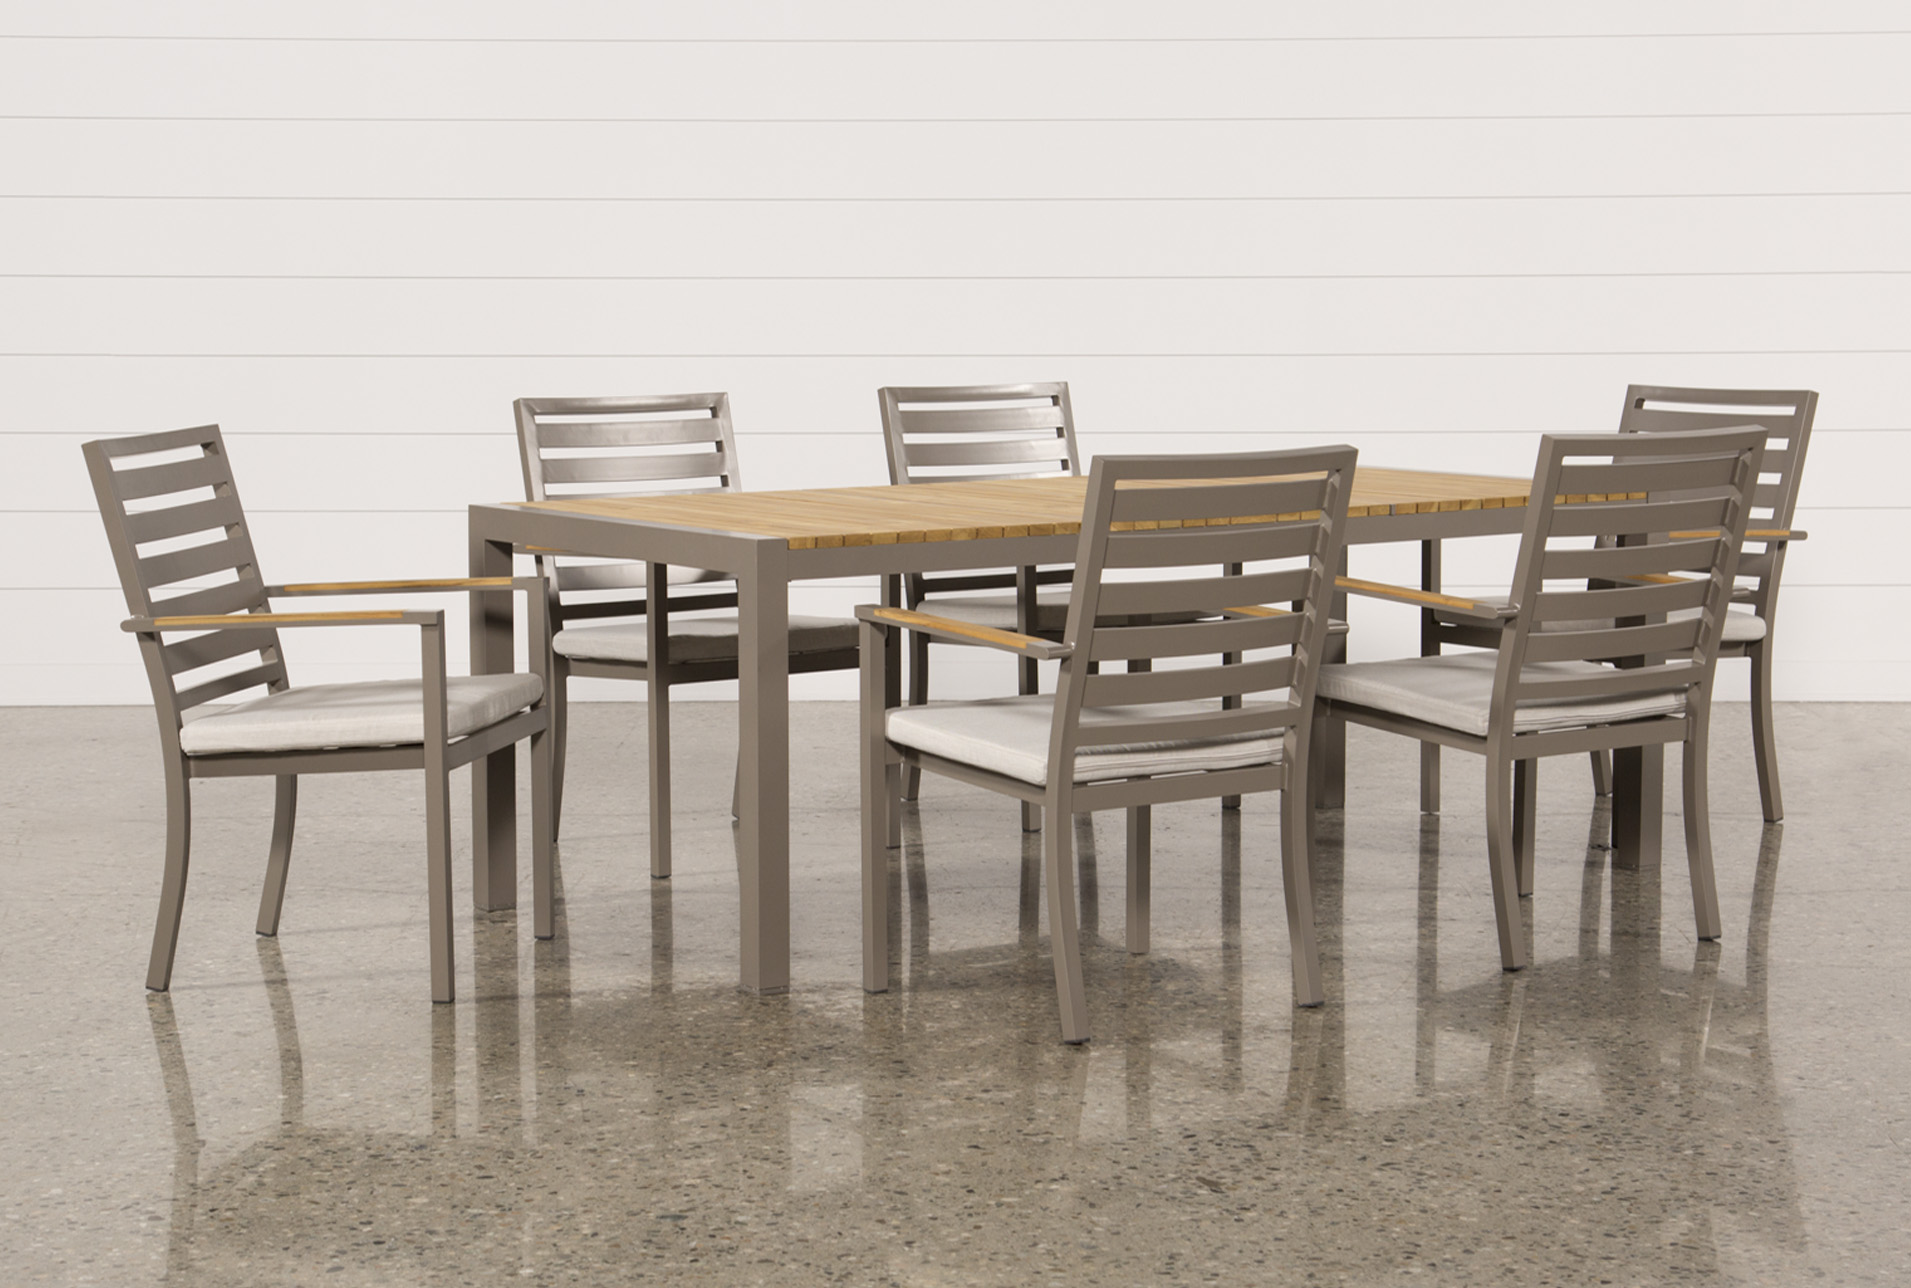 Outdoor Brasilia Teak Dining Table With 6 Chairs (Qty: 1) Has Been  Successfully Added To Your Cart.